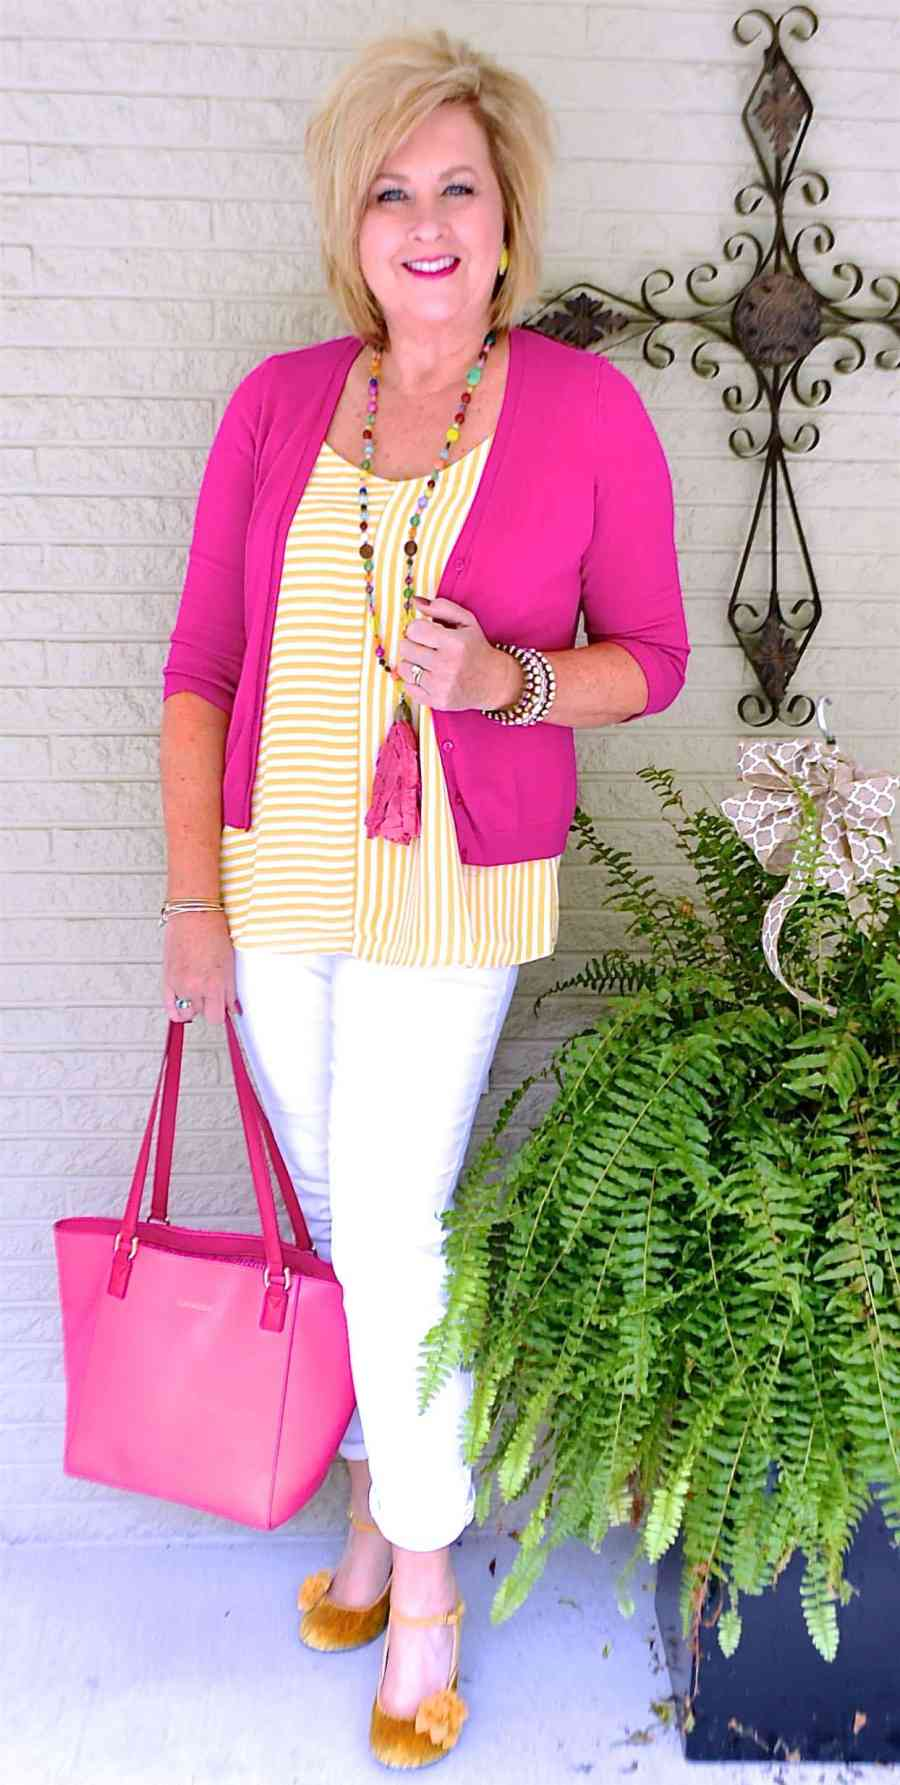 50 IS NOT OLD | STRIPES ARE A SUMMER TREND